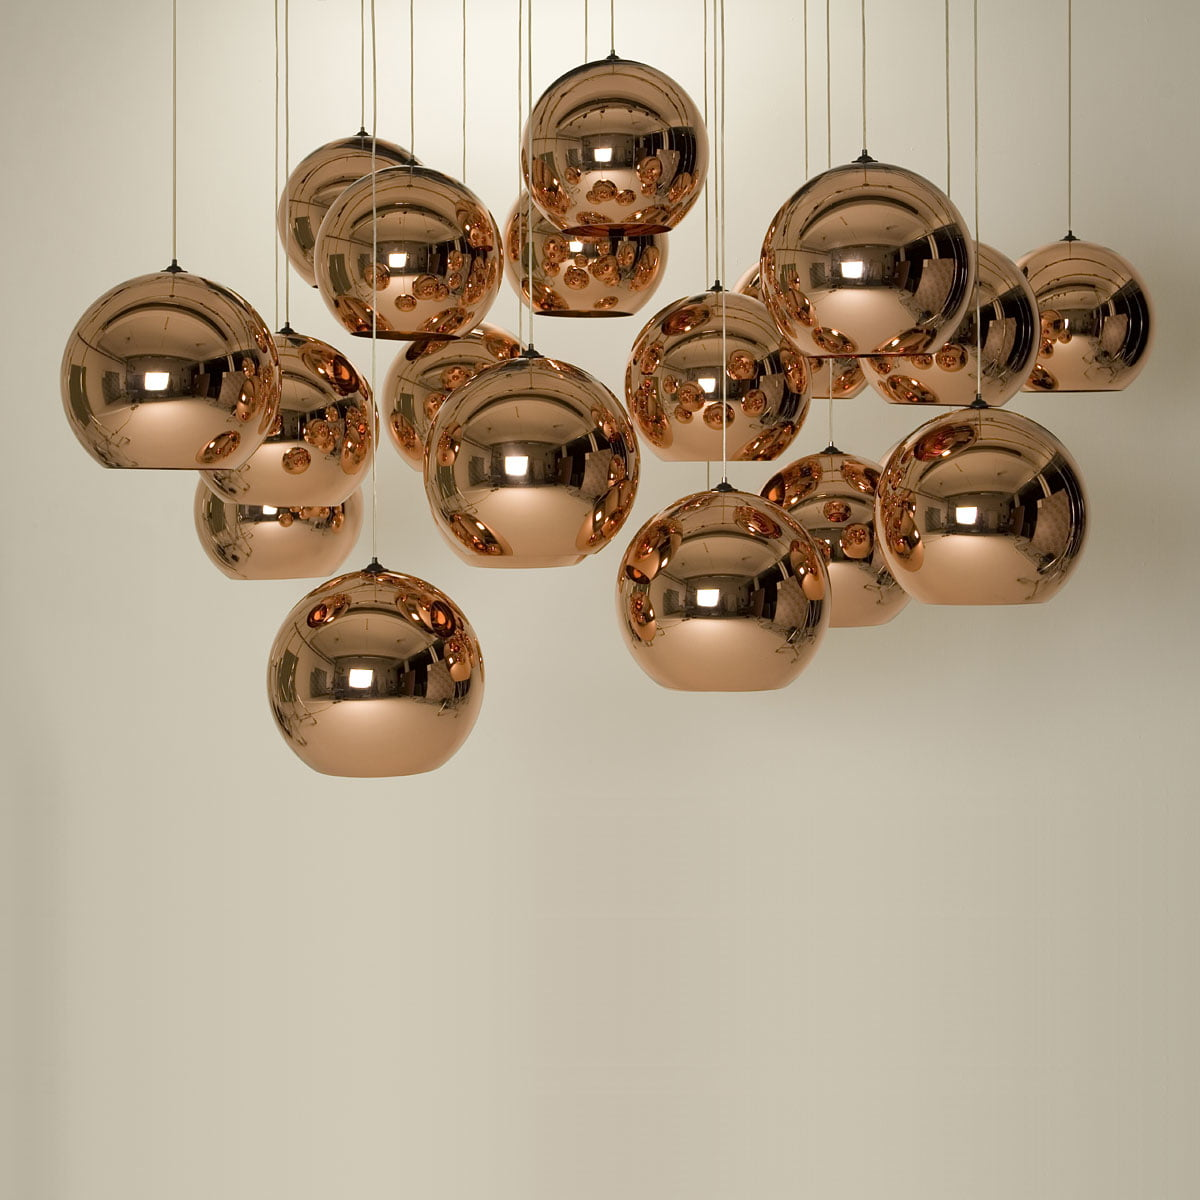 copper pendelleuchte von tom dixon im shop. Black Bedroom Furniture Sets. Home Design Ideas